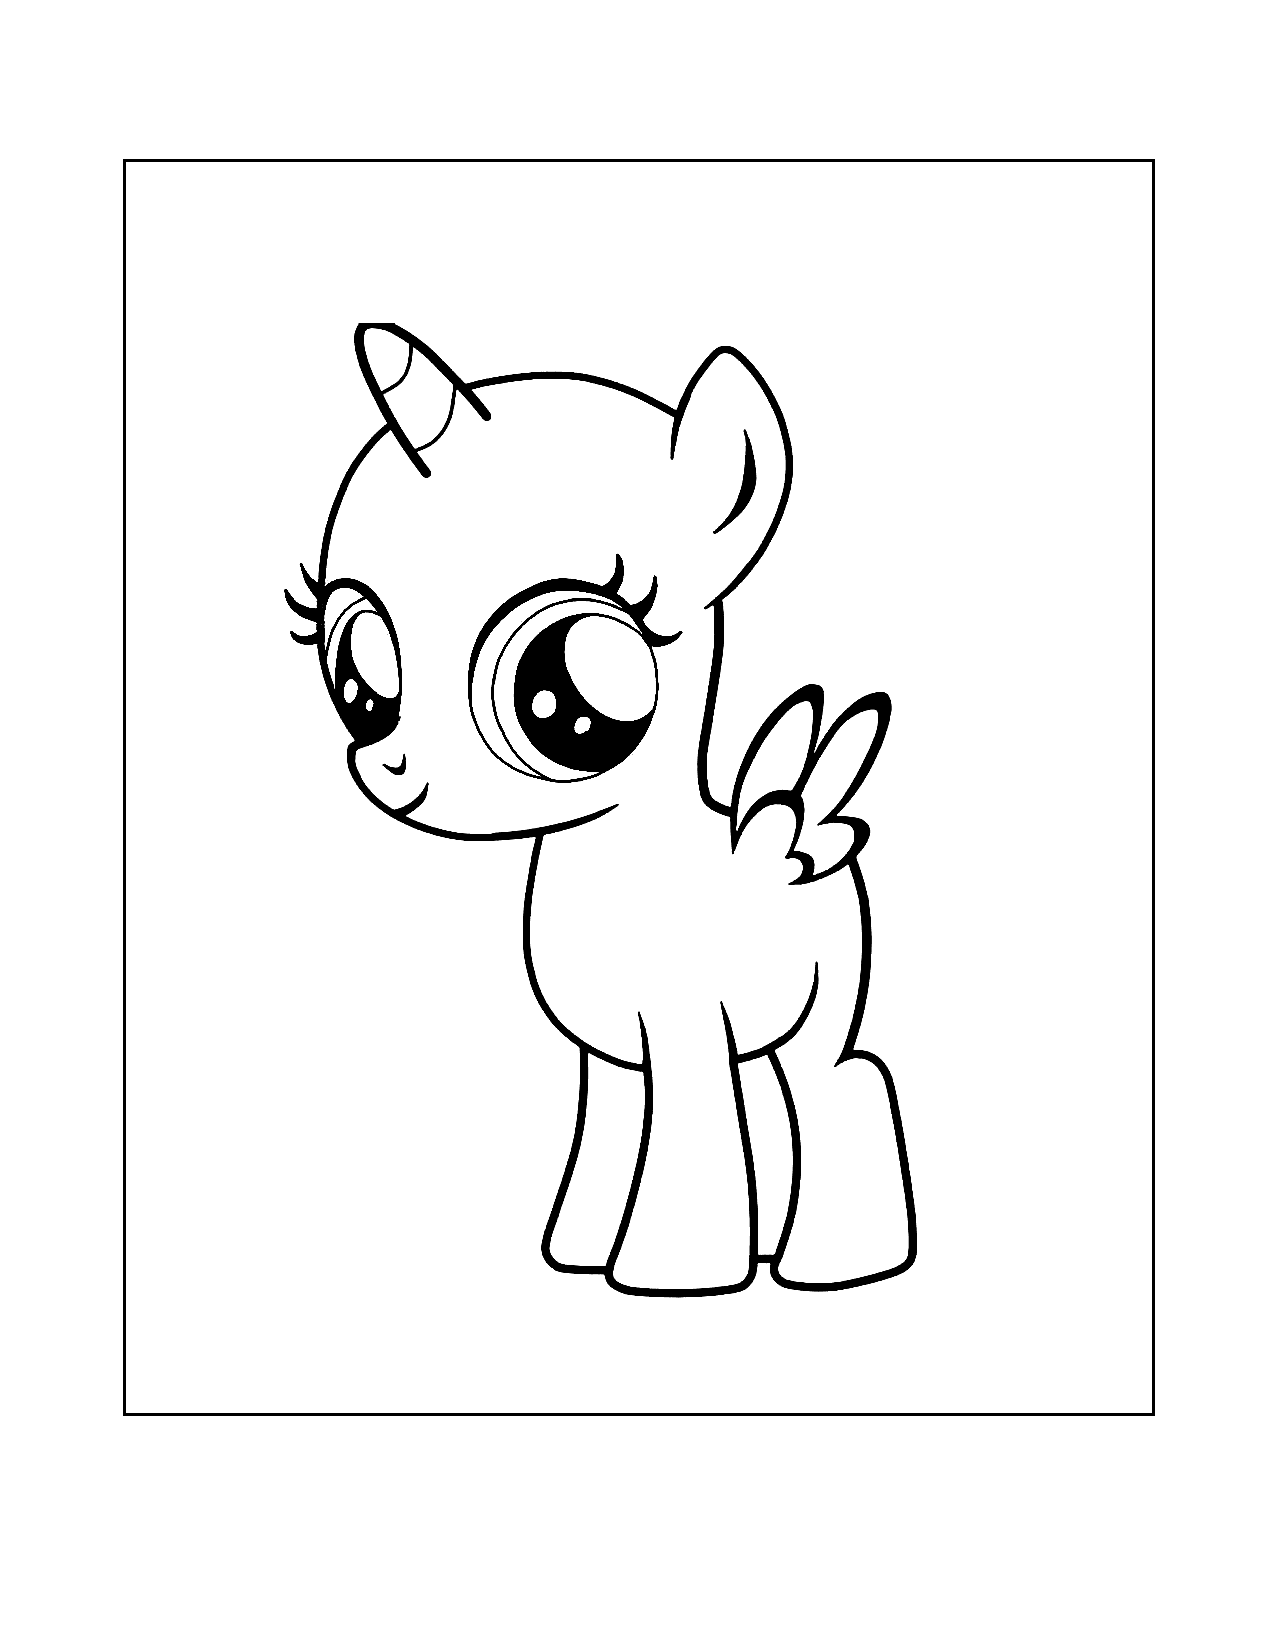 Baby Mlp Alicorn Coloring Page